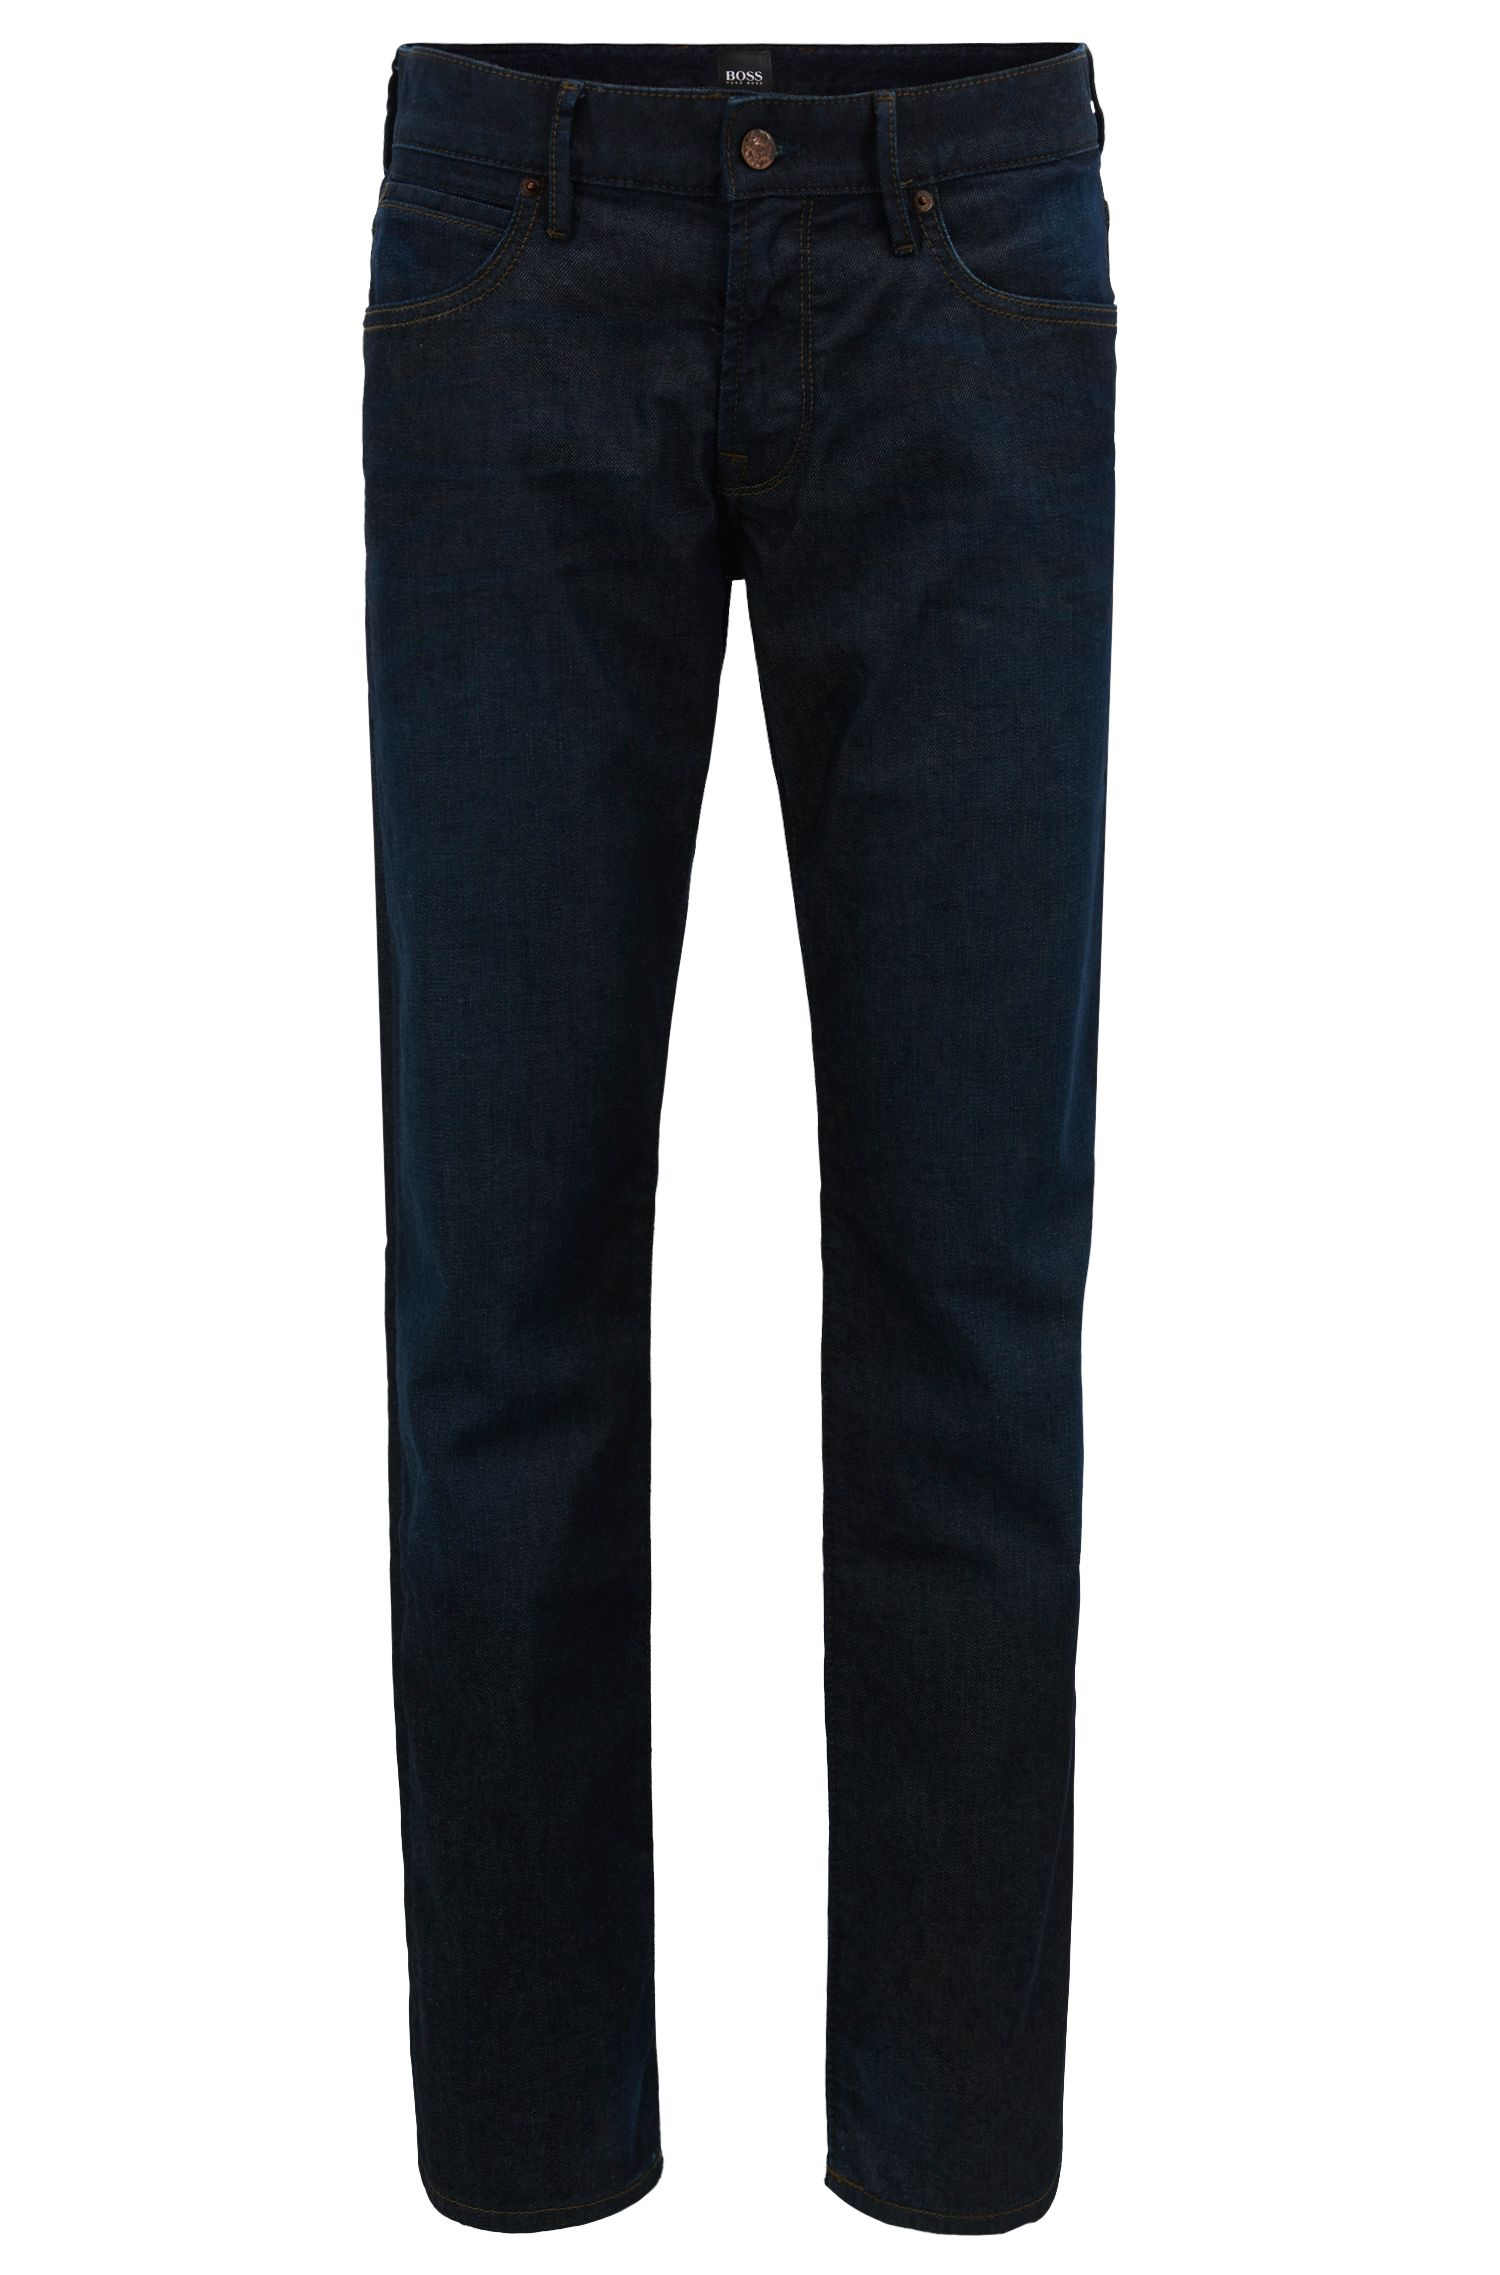 Jeans regular fit in denim indaco elasticizzato